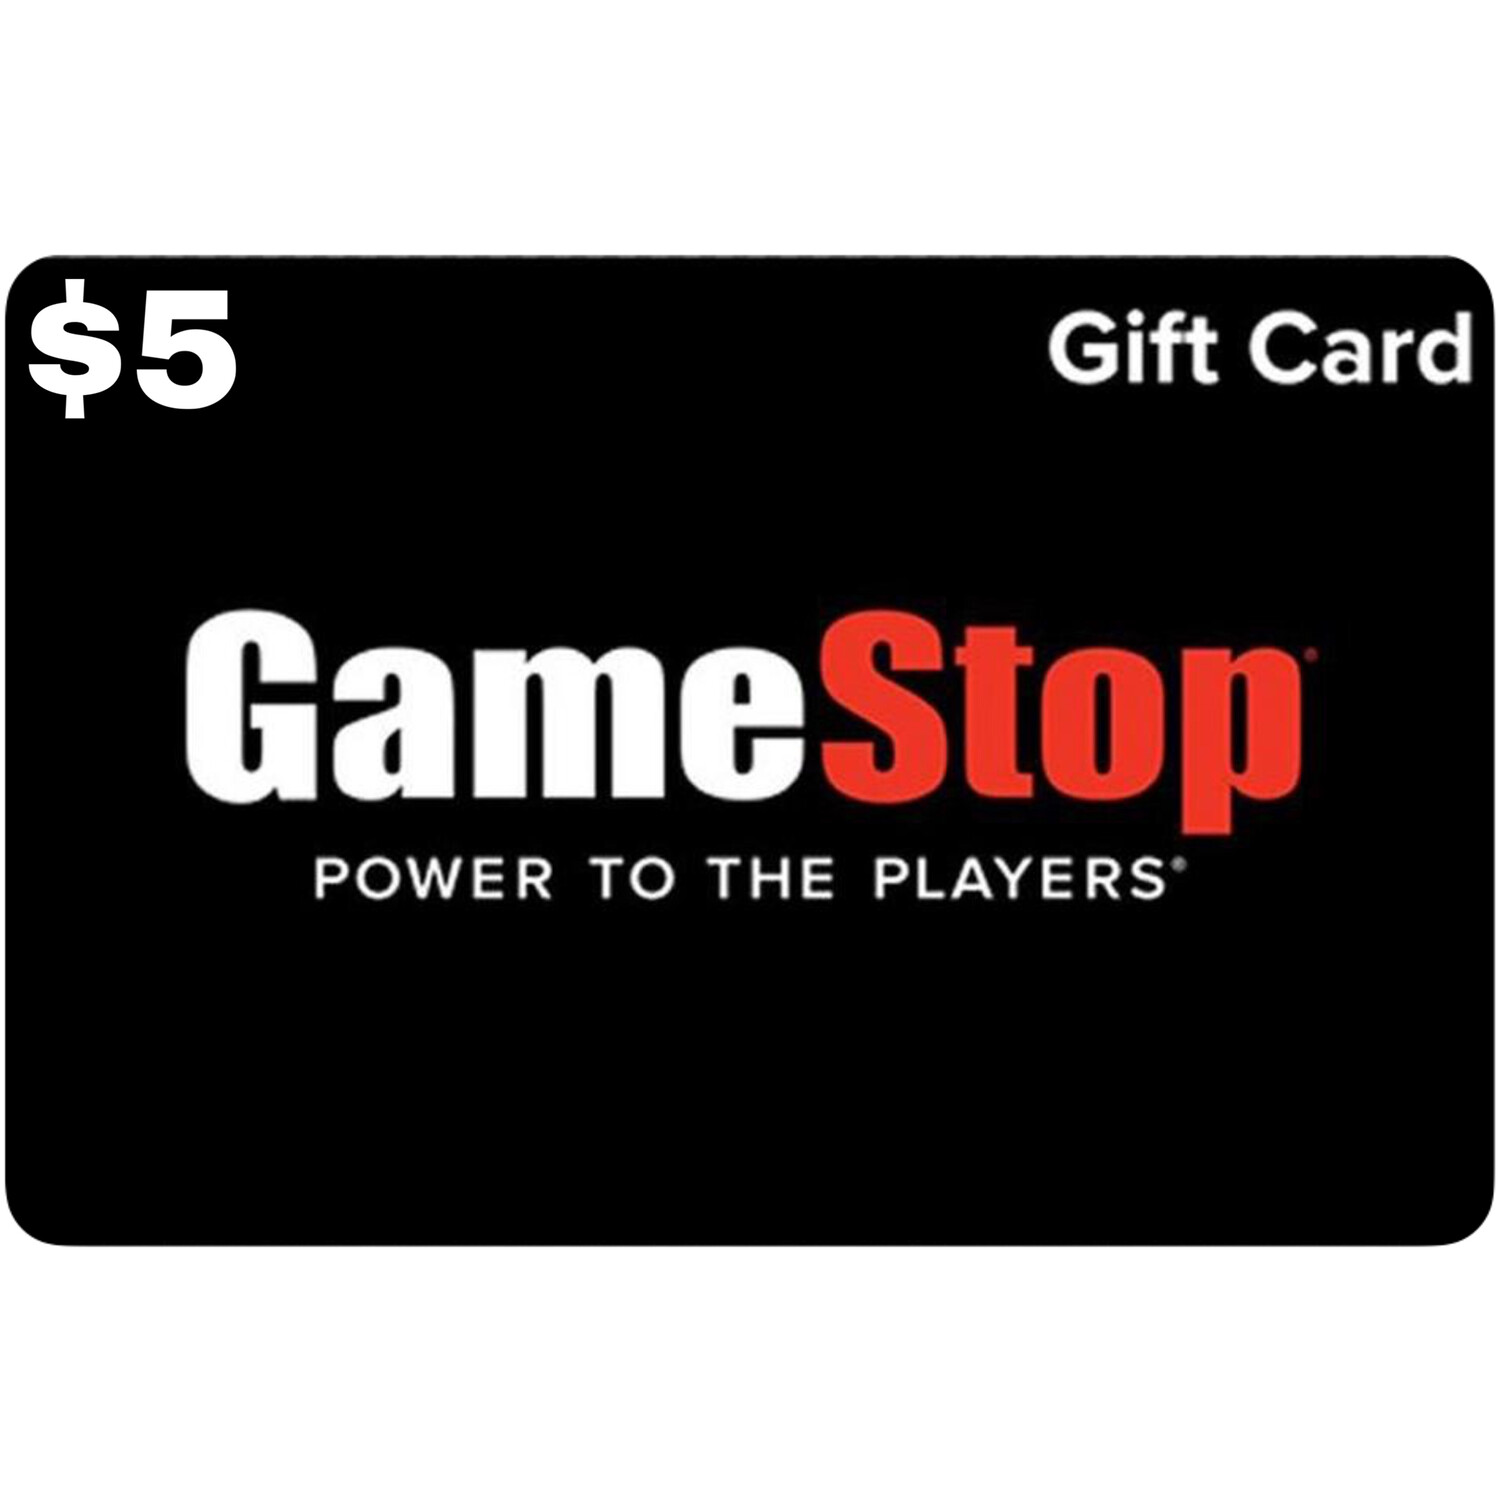 Gamestop Gift Card $5